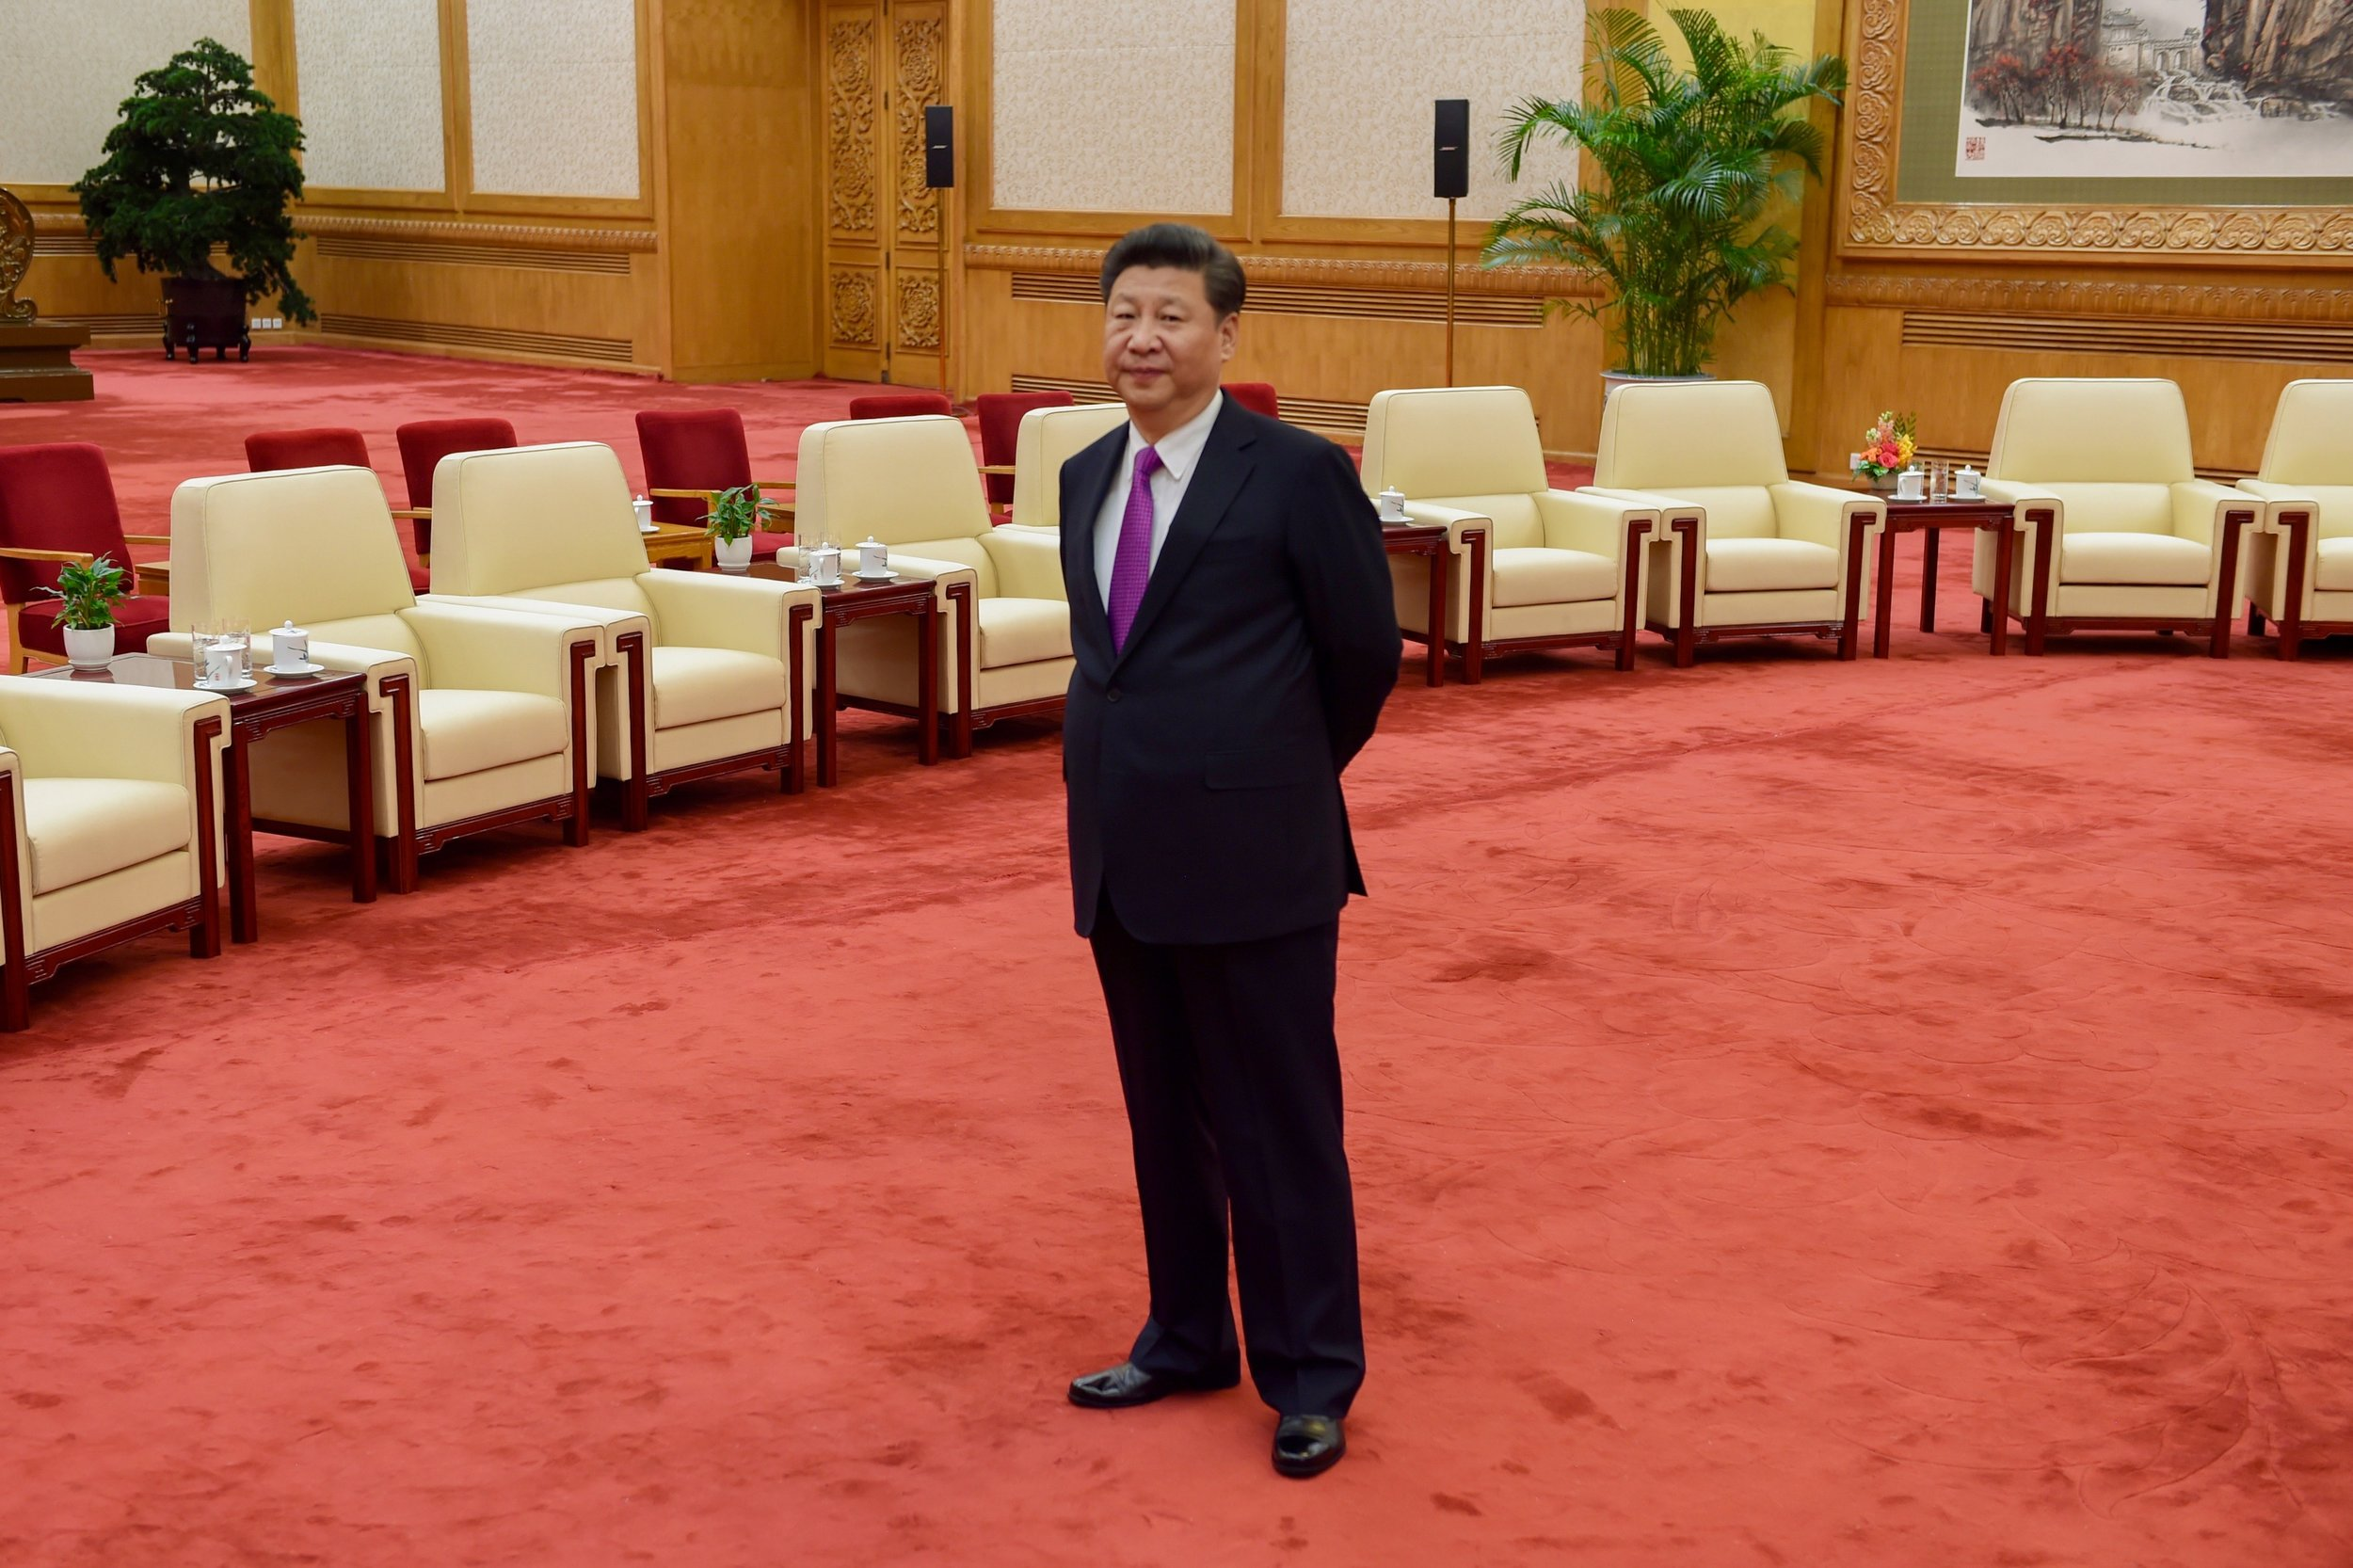 President Xi, leader of one-quarter of the world's population, awaits the arrival of our delegation.